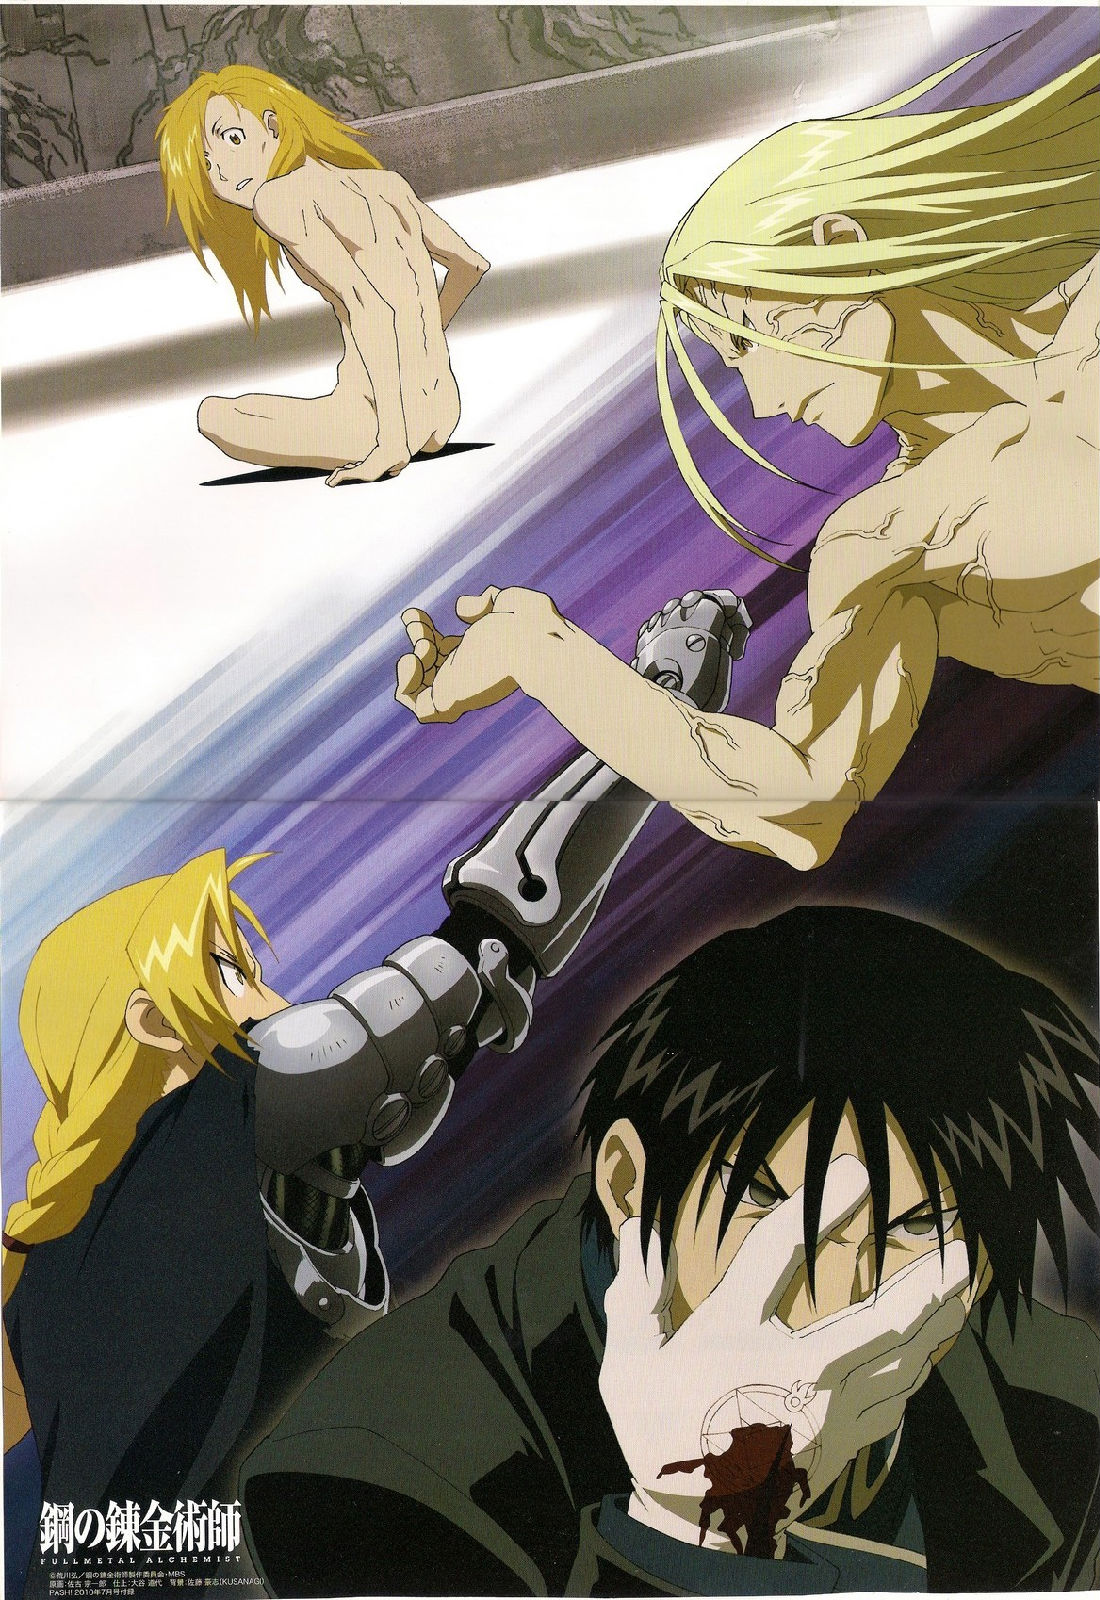 3boys alphonse_elric amestris_military_uniform androgynous arm_support automail back black_coat black_hair blind blonde_hair blood bloody_clothes blue_jacket braid cheekbones coat completely_nude dimples_of_venus door dutch_angle edward_elric emaciated empty_eyes expressionless face-to-face facing_viewer father_(fma) fighting frown full_body fullmetal_alchemist gloves grin hair_over_one_eye hand_on_own_face hand_up highres jacket long_hair looking_afar looking_back male_focus messy_hair military military_uniform multiple_boys nude official_art outstretched_arm parted_lips pectorals profile roy_mustang shadow shiny shiny_hair shoulder_blades sitting smile spine tareme uniform veins white_gloves wide-eyed yellow_eyes